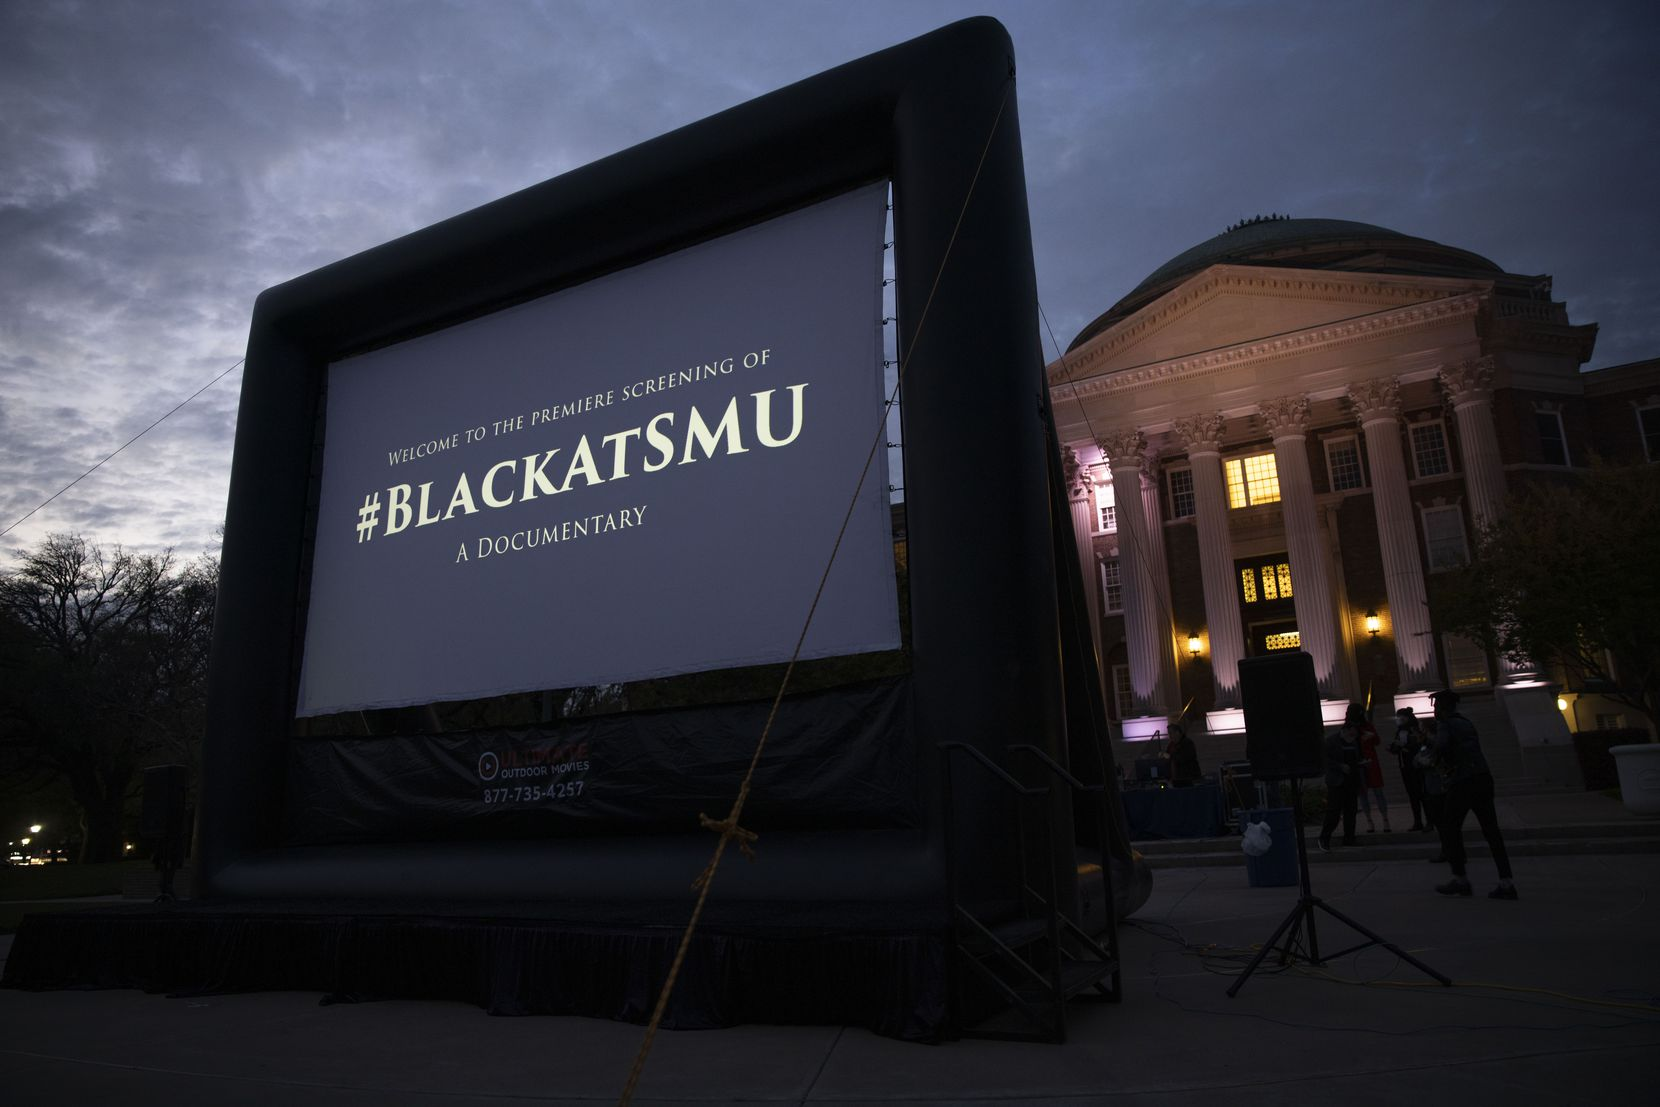 The screen before the premiere of #BlackAtSMU film, which documents five Black students' encounters with racism at SMU, at the Dallas Hall Lawn on SMU's Campus on Wednesday, April 21, 2021, in Dallas. (Juan Figueroa/The Dallas Morning News)